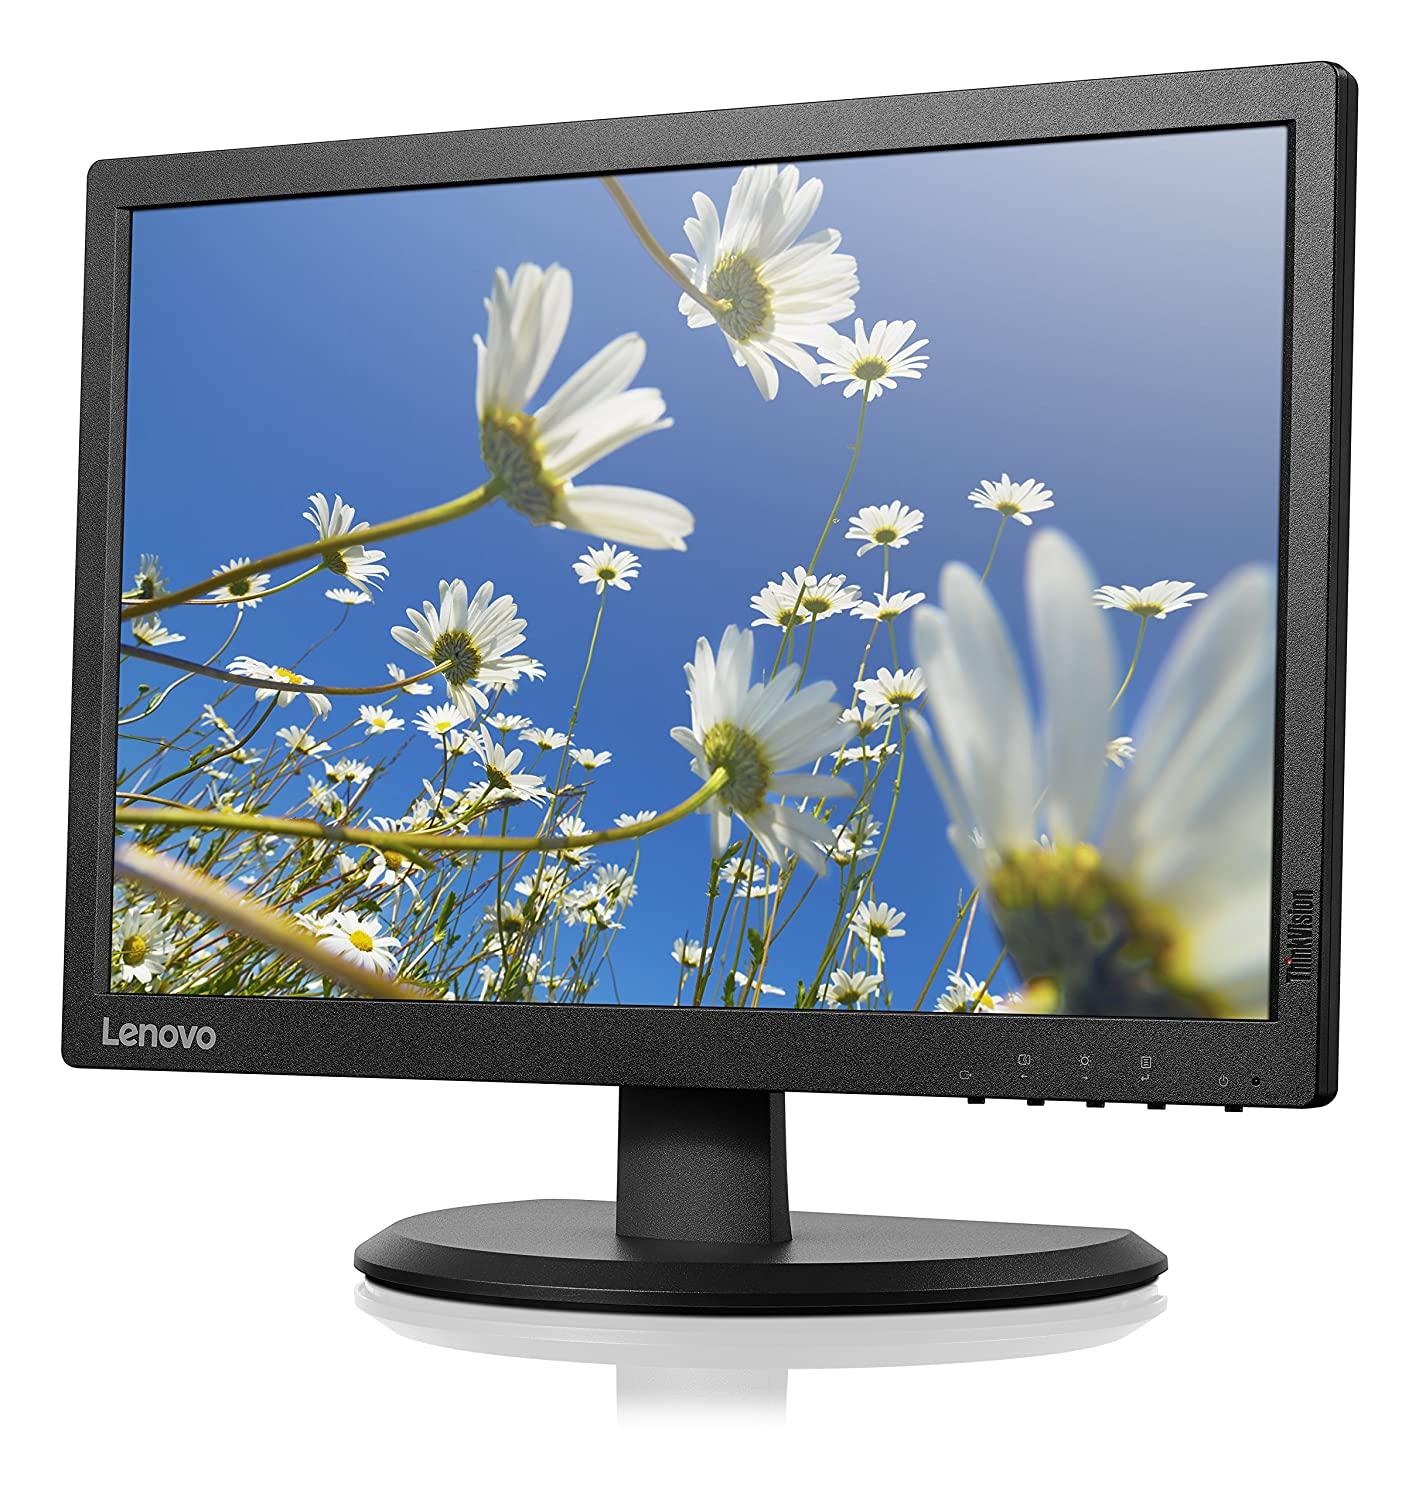 "Lenovo 60DFAAR1US 19.5"" Screen LED-Lit Monitor"